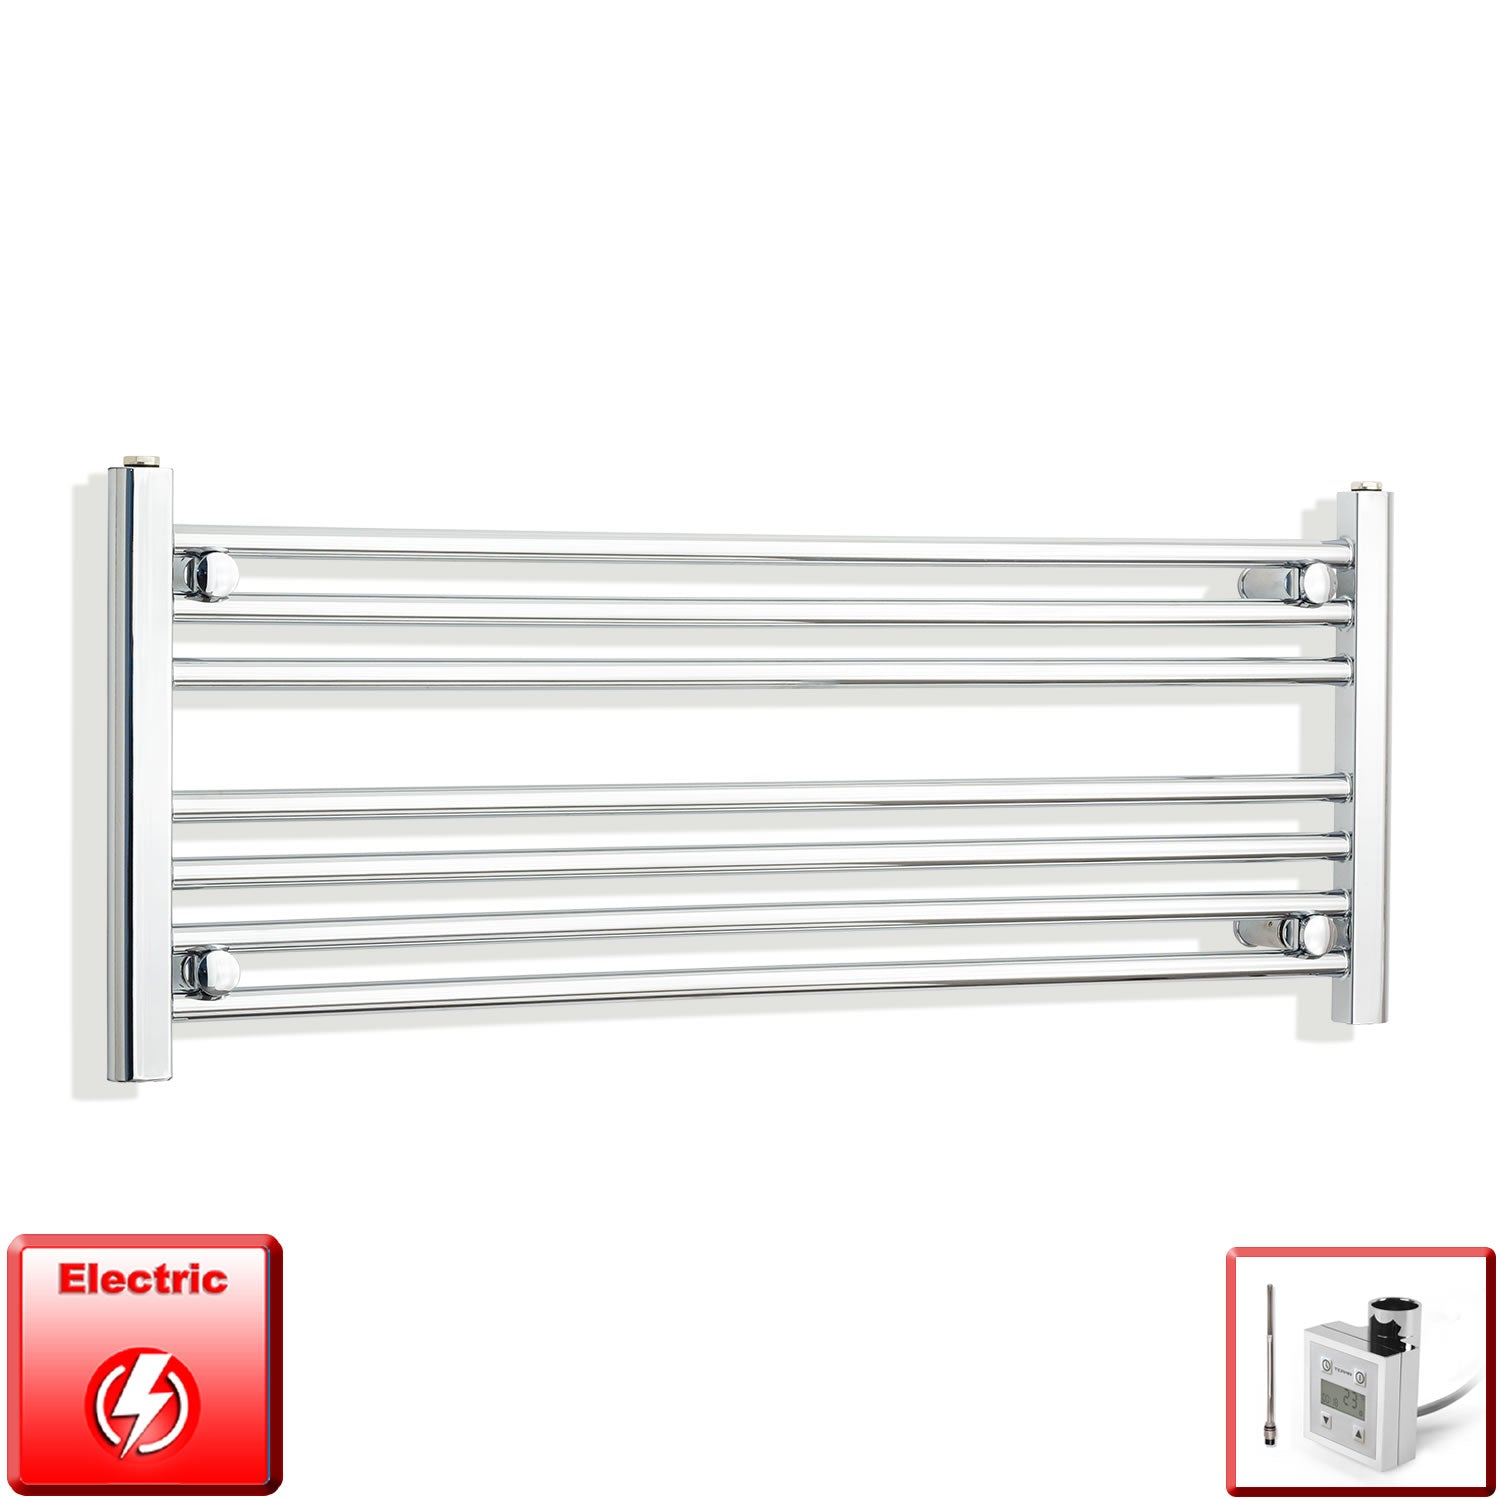 1200mm Wide 400mm High Pre-Filled Chrome Electric Towel Rail Radiator With Thermostatic MEG Element